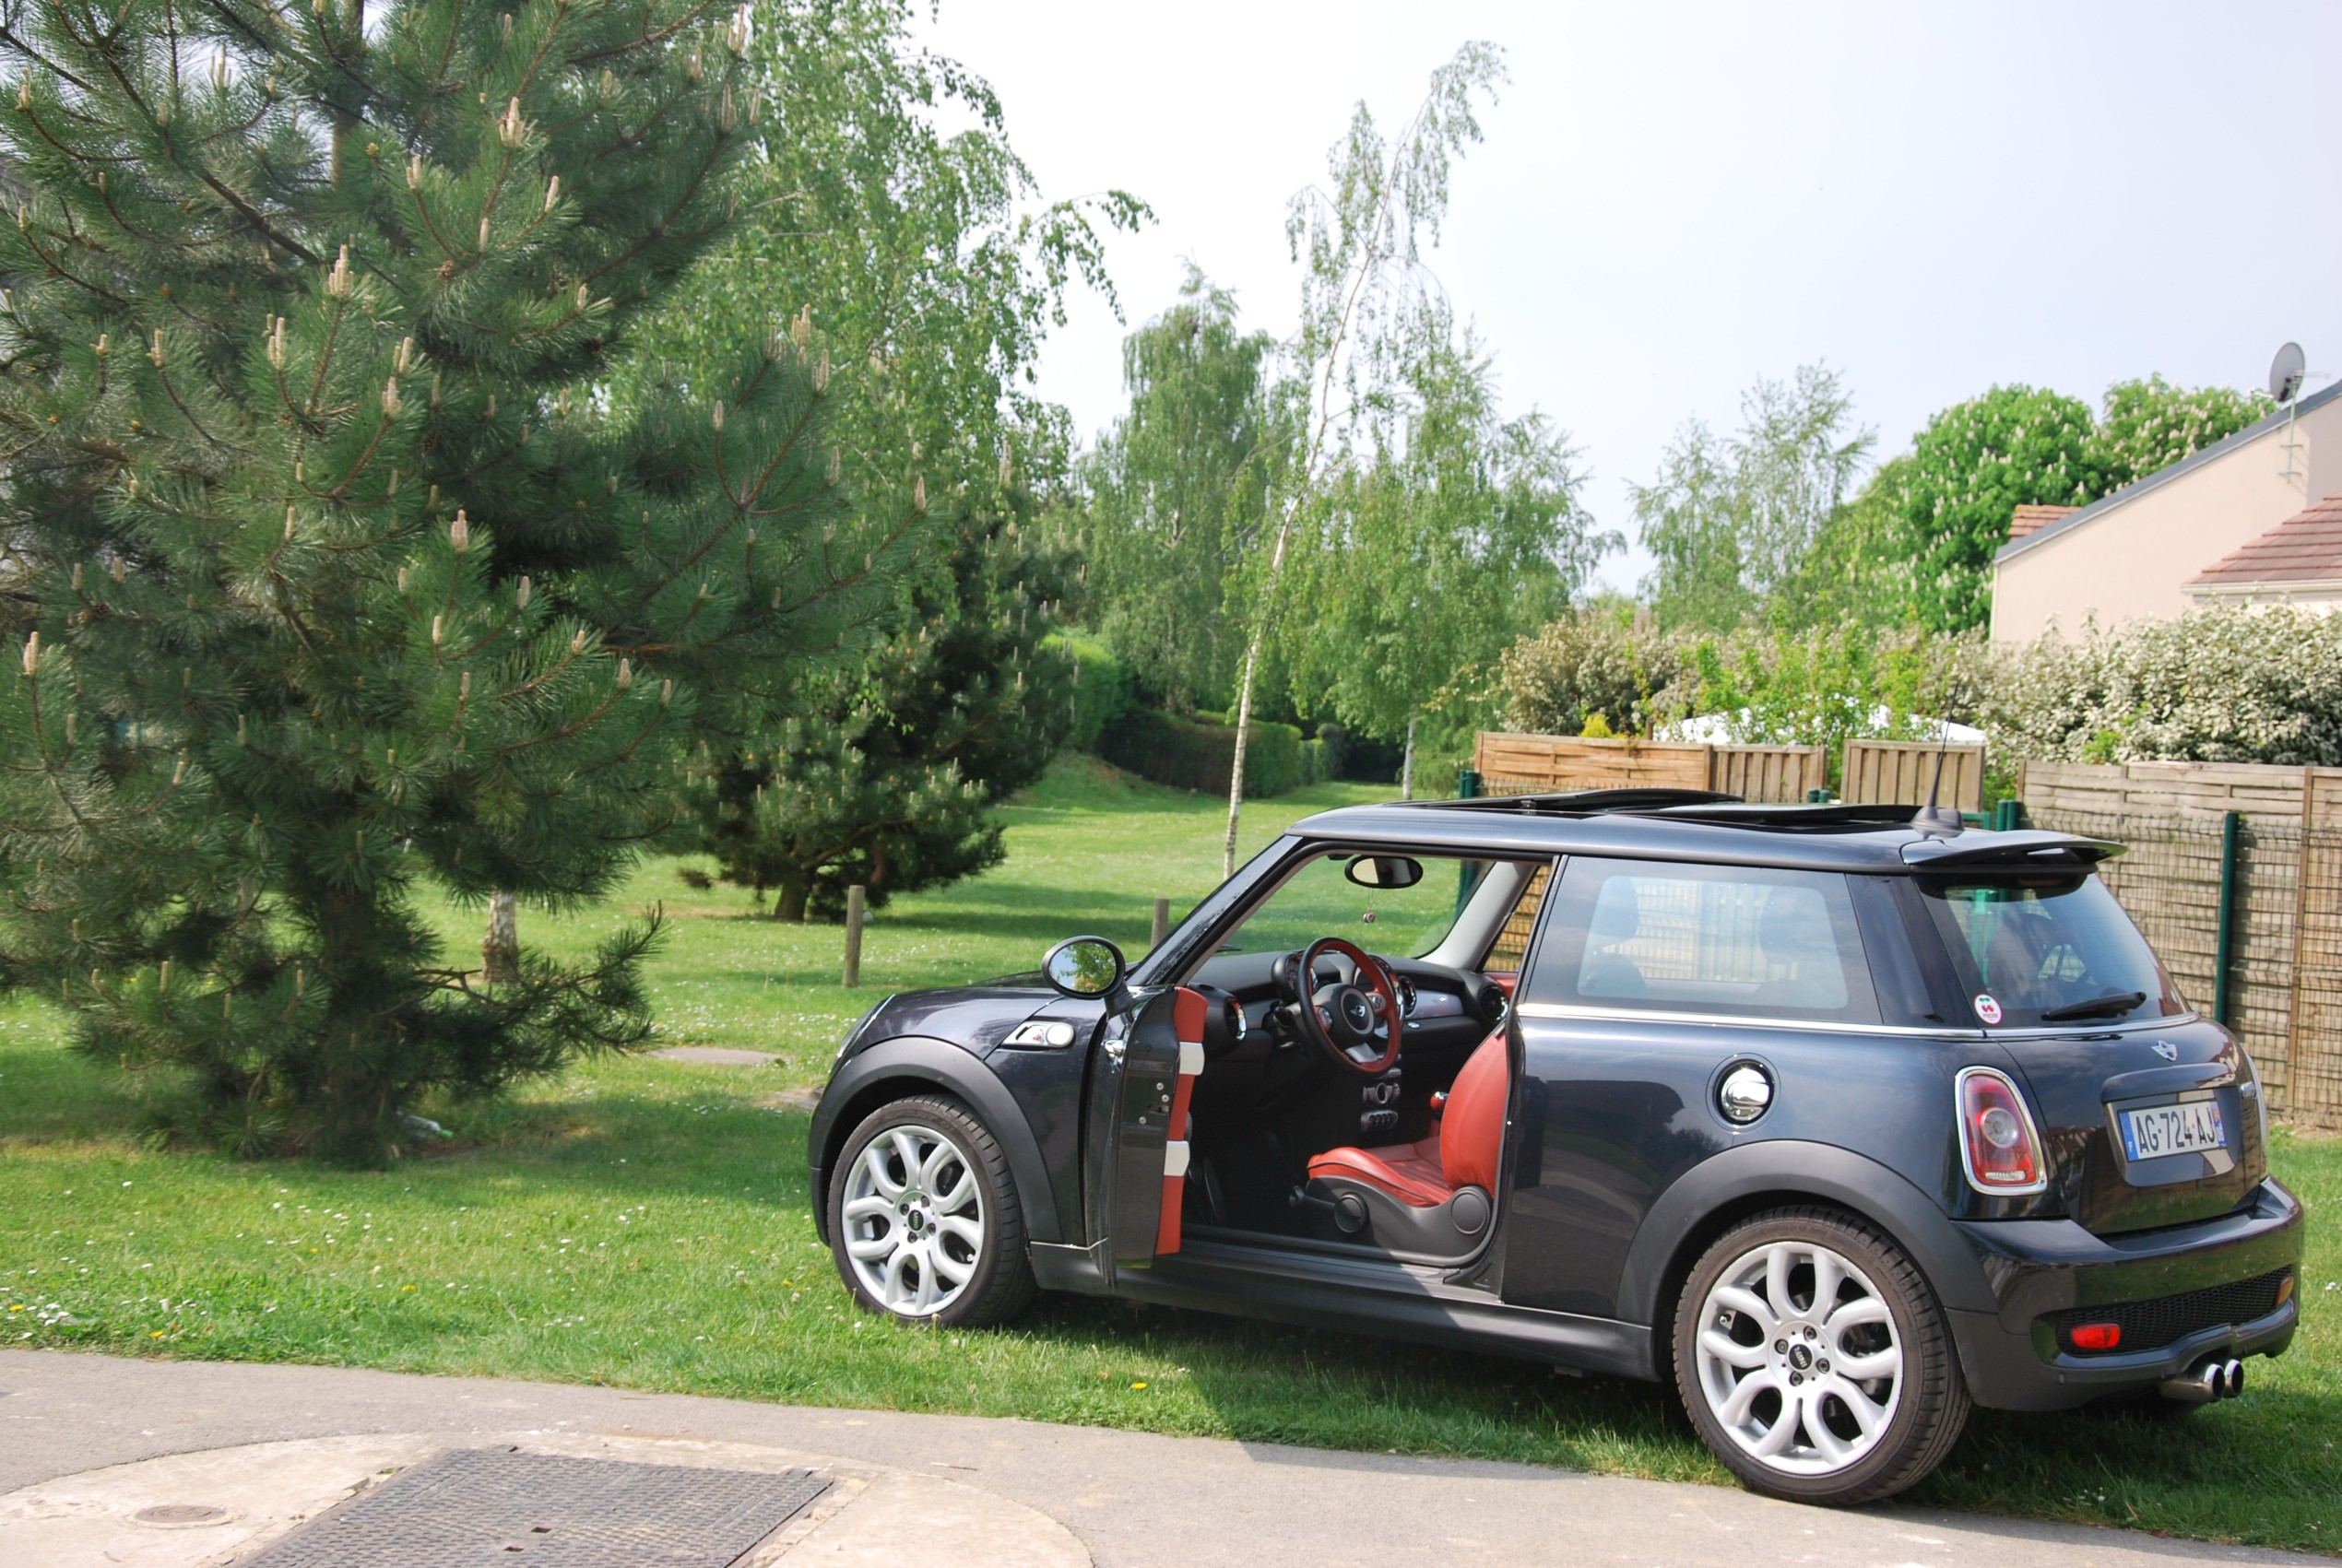 essais avis achat occasion mini cooper s r56 175ch page 2 auto titre. Black Bedroom Furniture Sets. Home Design Ideas